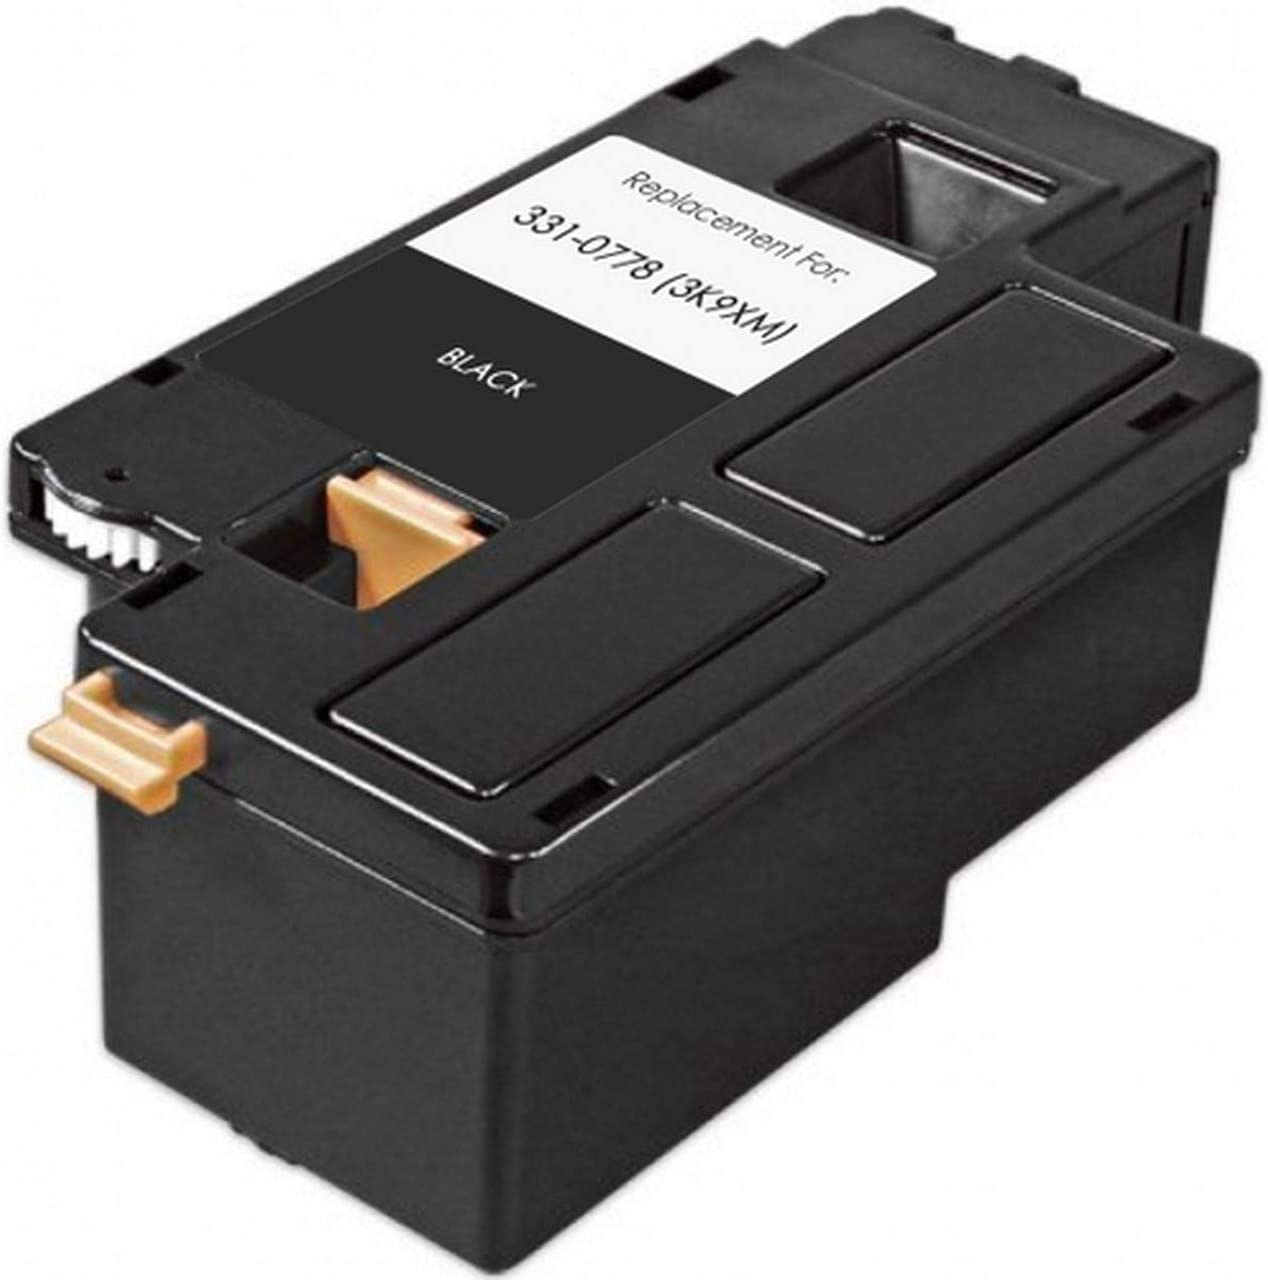 C1765nfw The House of Toner Compatible Toner Cartridge Replacement for DELL 331-0778 C1760nw 1355cn use in 1250c 1350cnw 1355cnw C1765nf 810WH, High Yield Black